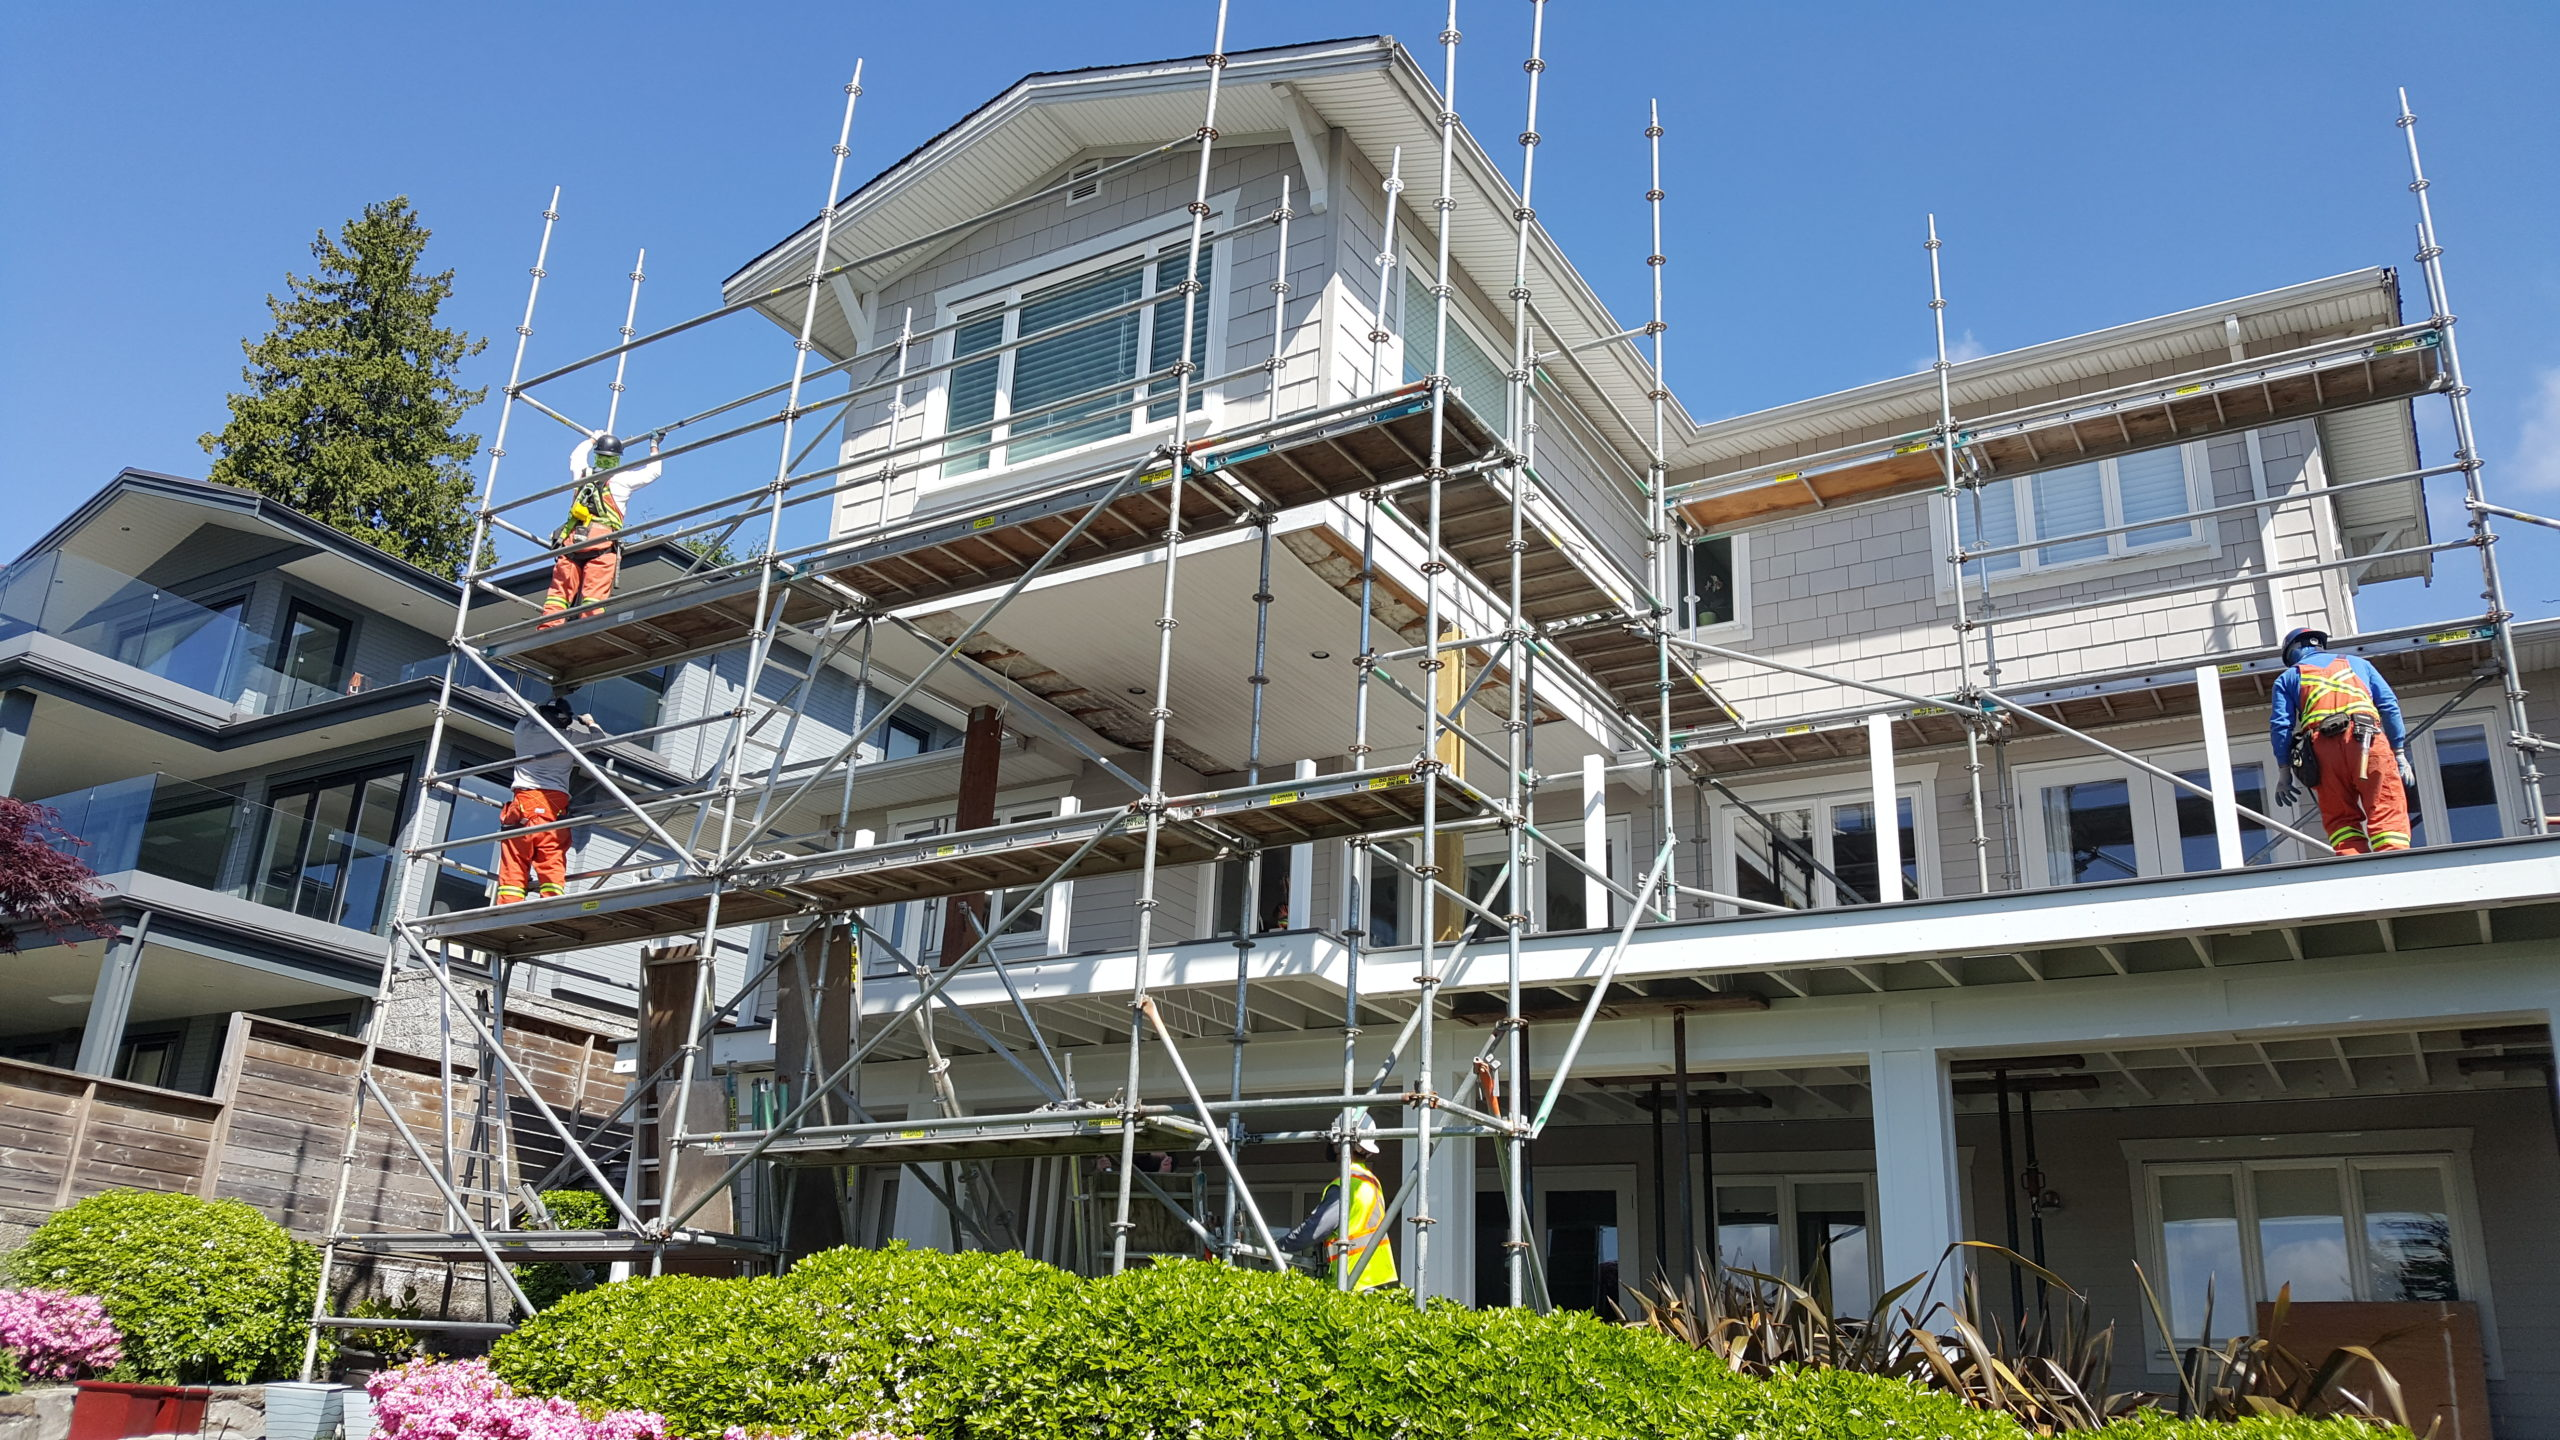 Scaffold Installers setting up scaffolding